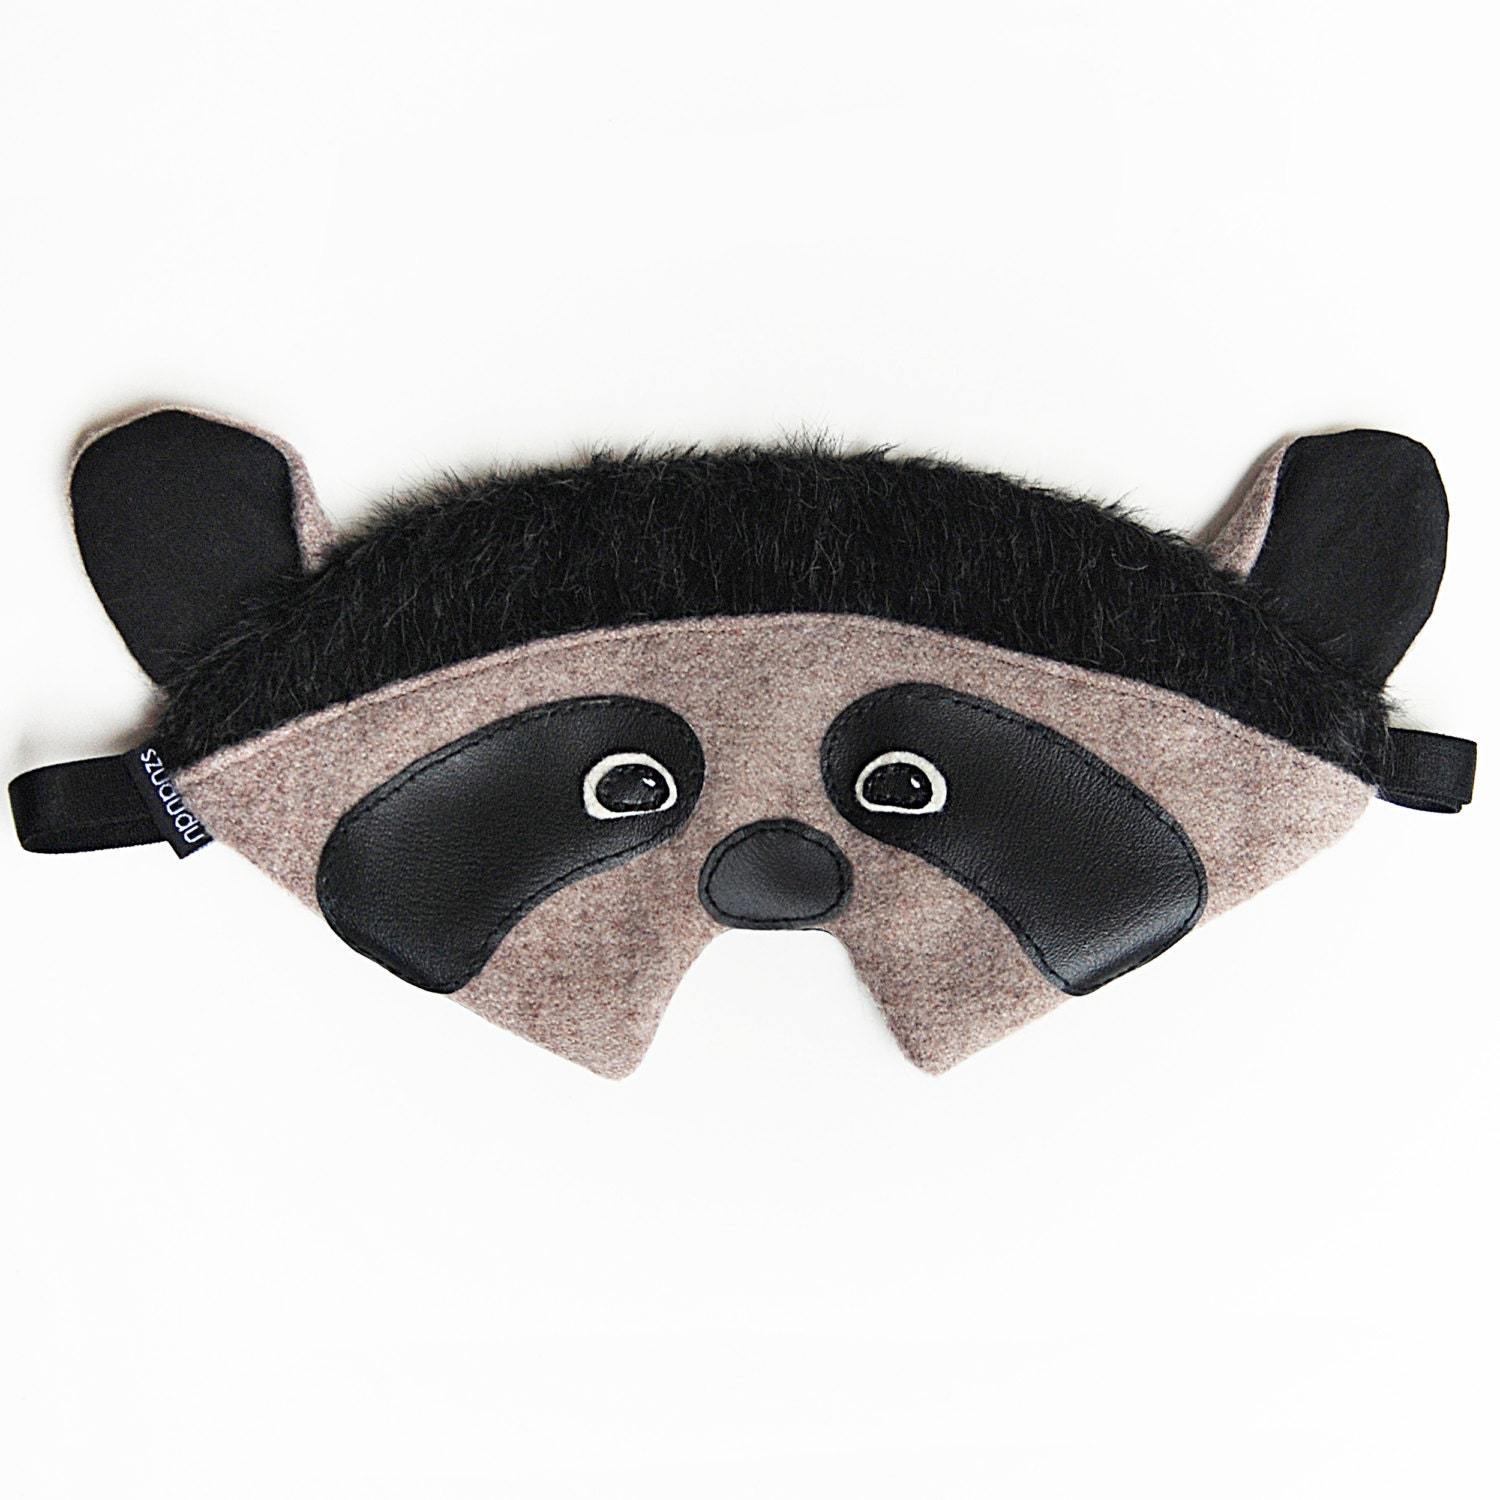 Raccoon sleep mask: racoon silk eye mask sleeping mask travel Raccoon Eye Mask